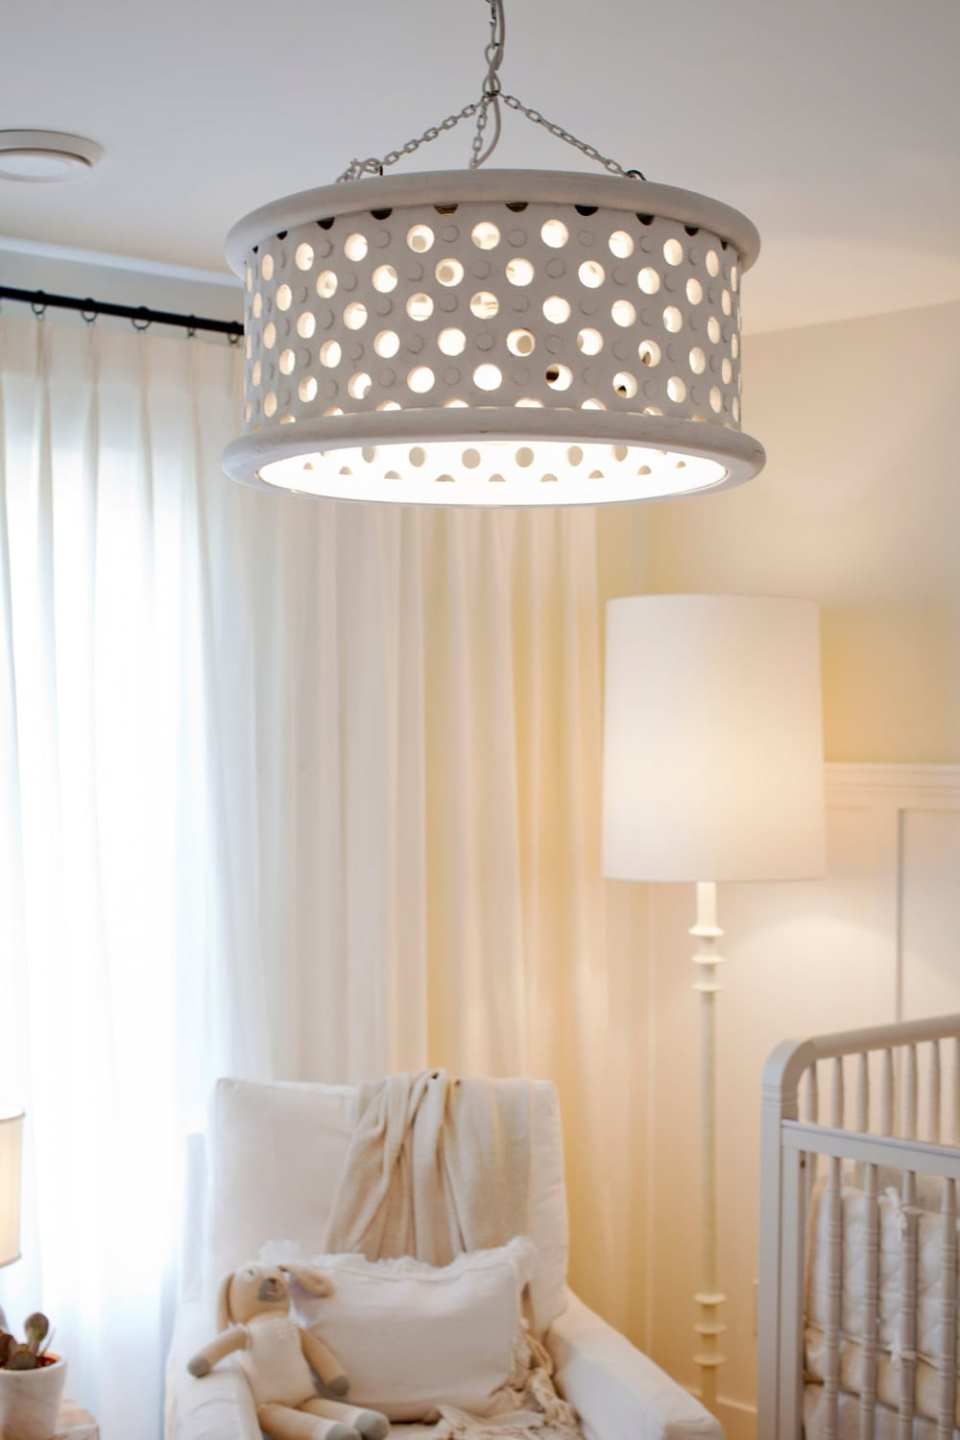 Lighting Leo S Nursery Jillian Harris